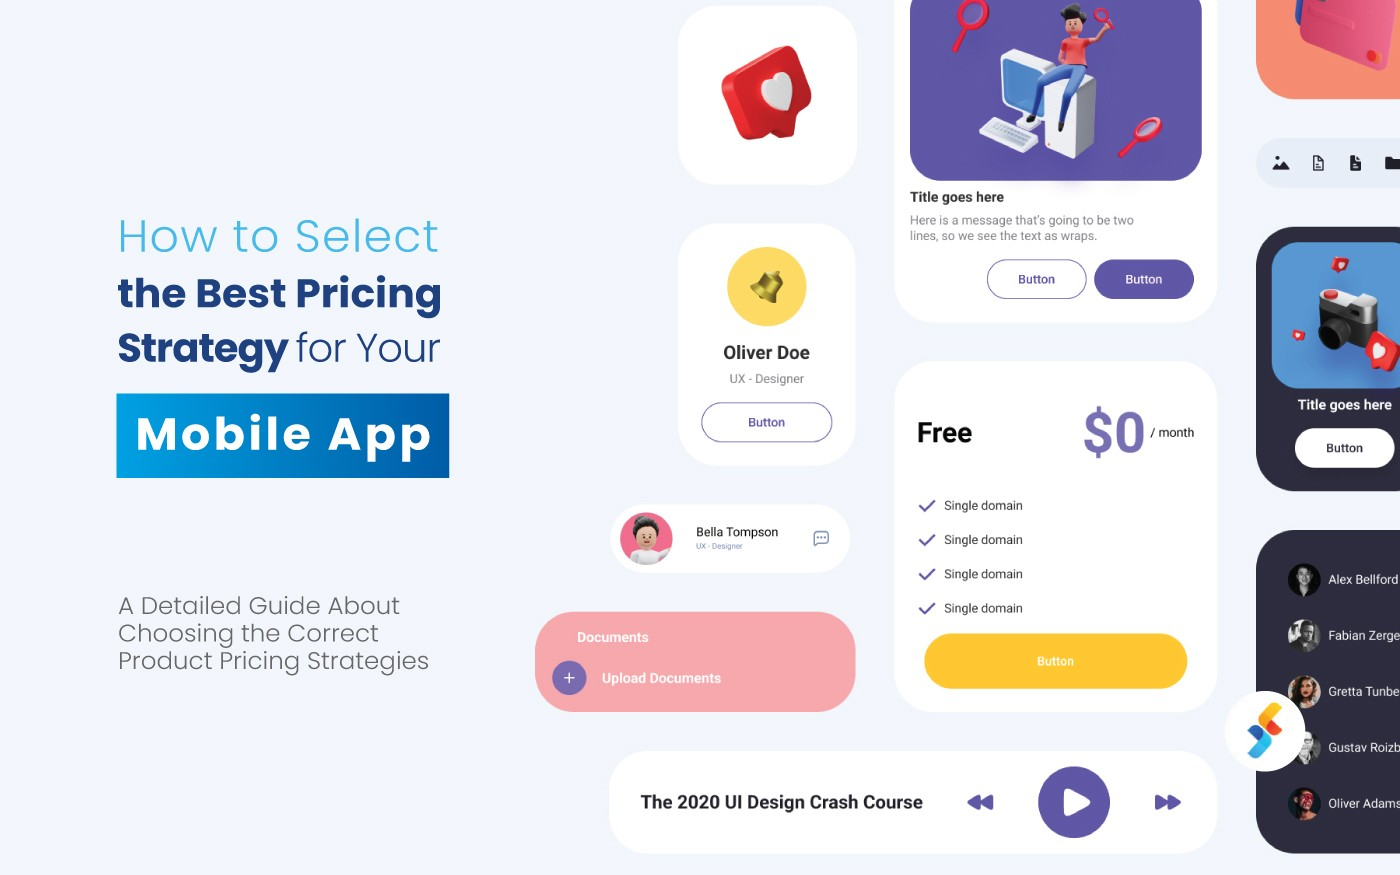 How to Select the Best Pricing Strategy for Your Mobile App